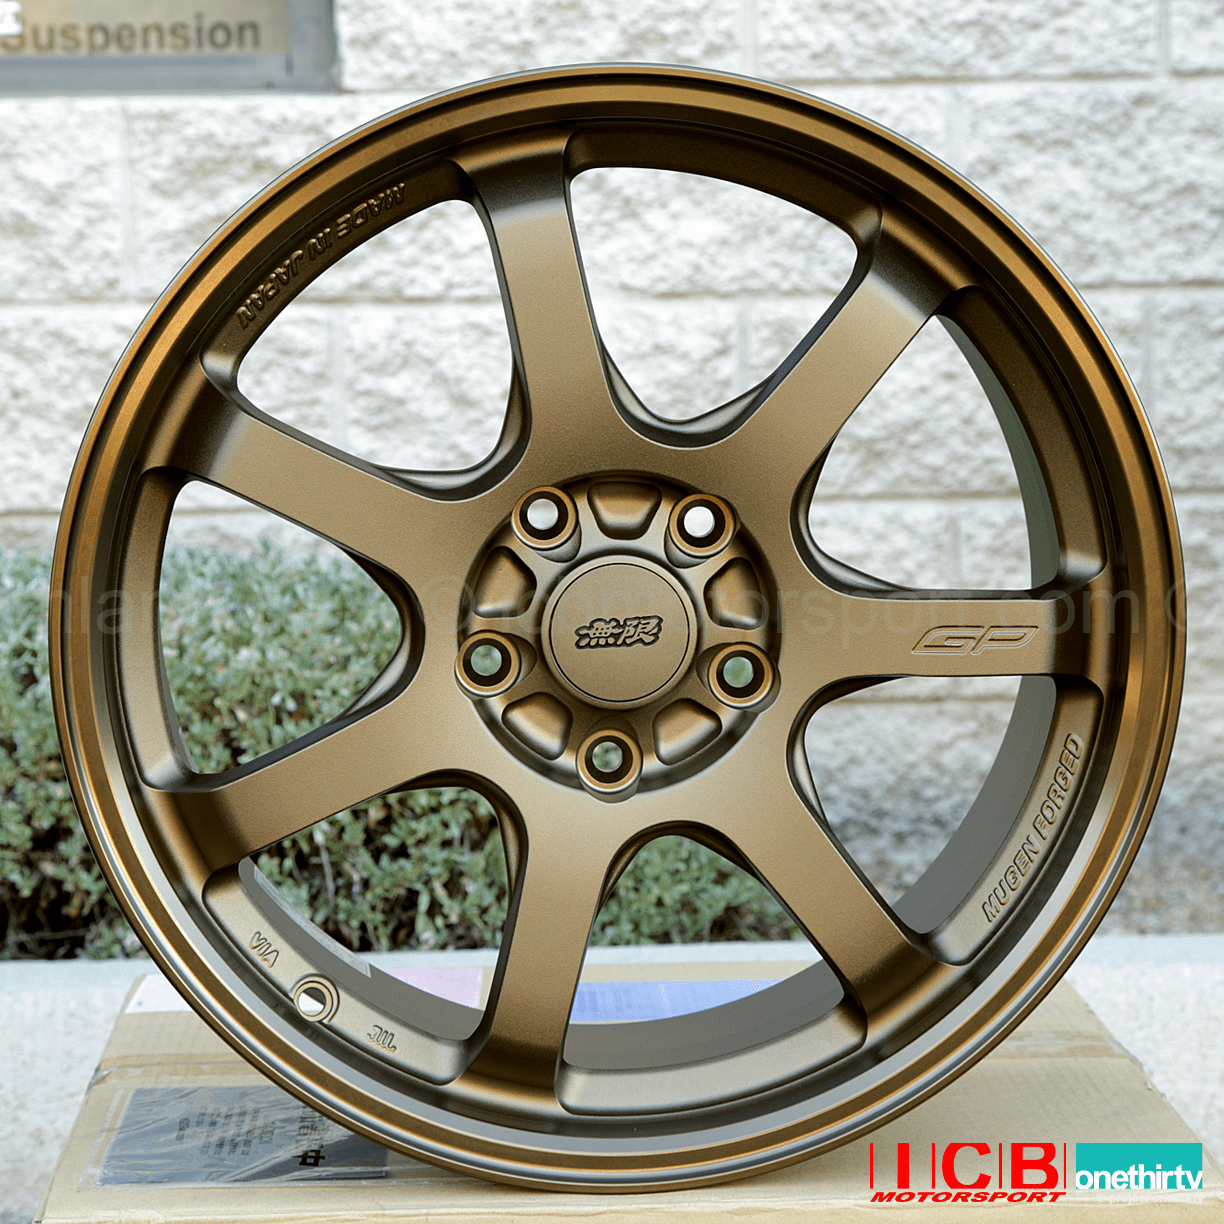 Mugen GP Forged Wheel BRONZE Finish 18x7.5 Civic FB6 FG4 Si Coupe/Sedan Accord EuroR TSX Integra RSX Type R CRZ 2011+